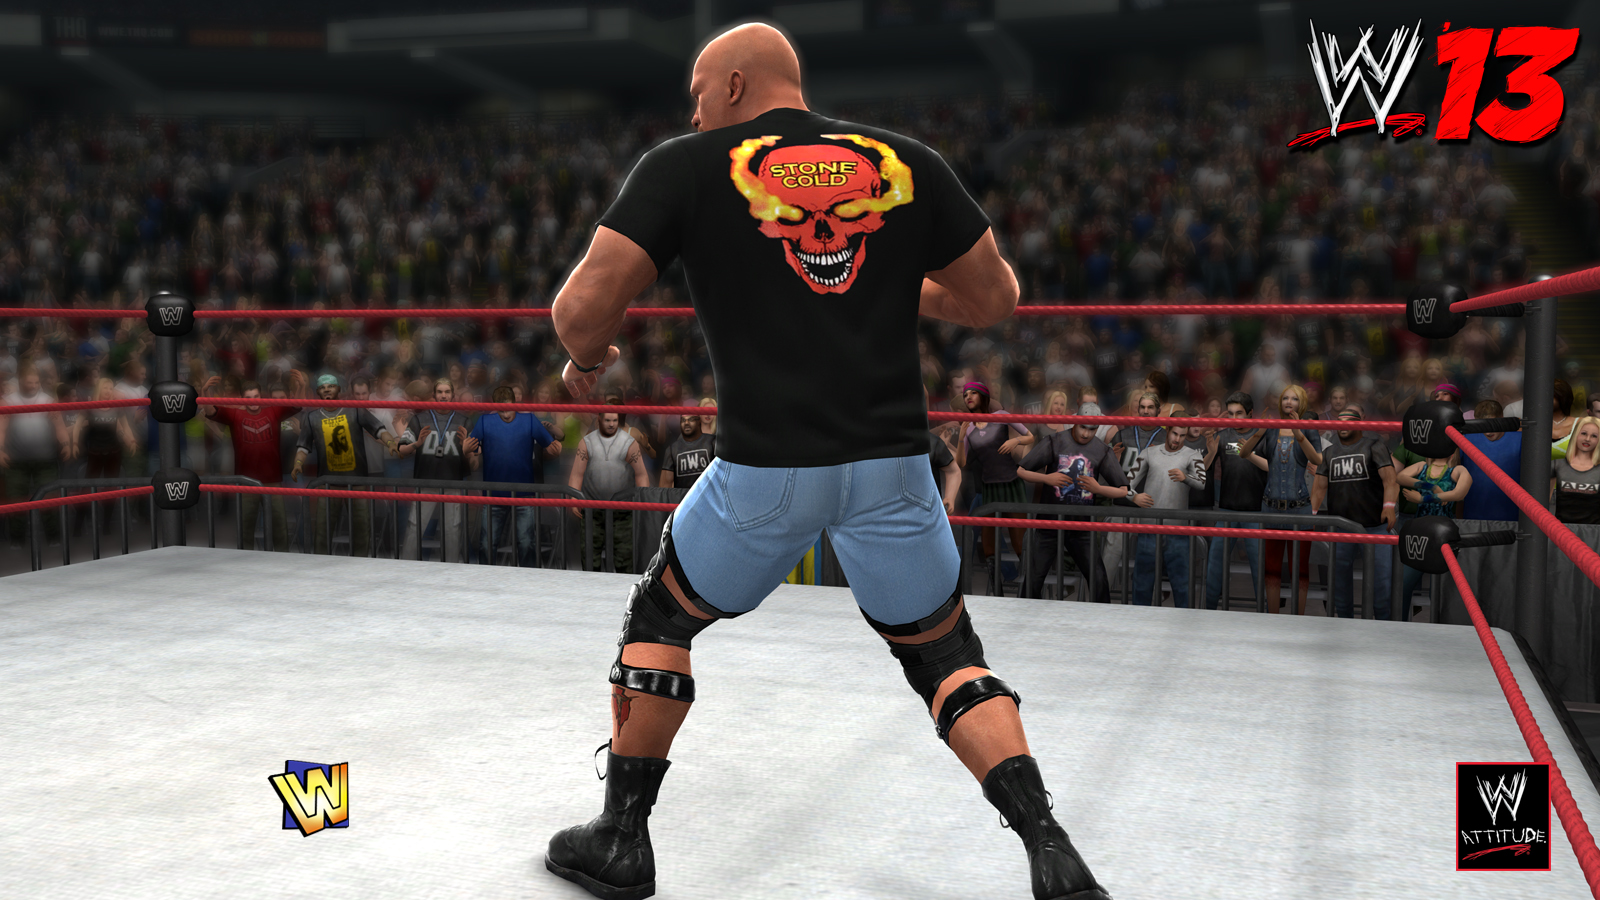 WWE 13 - CE Features Steve Austin 06